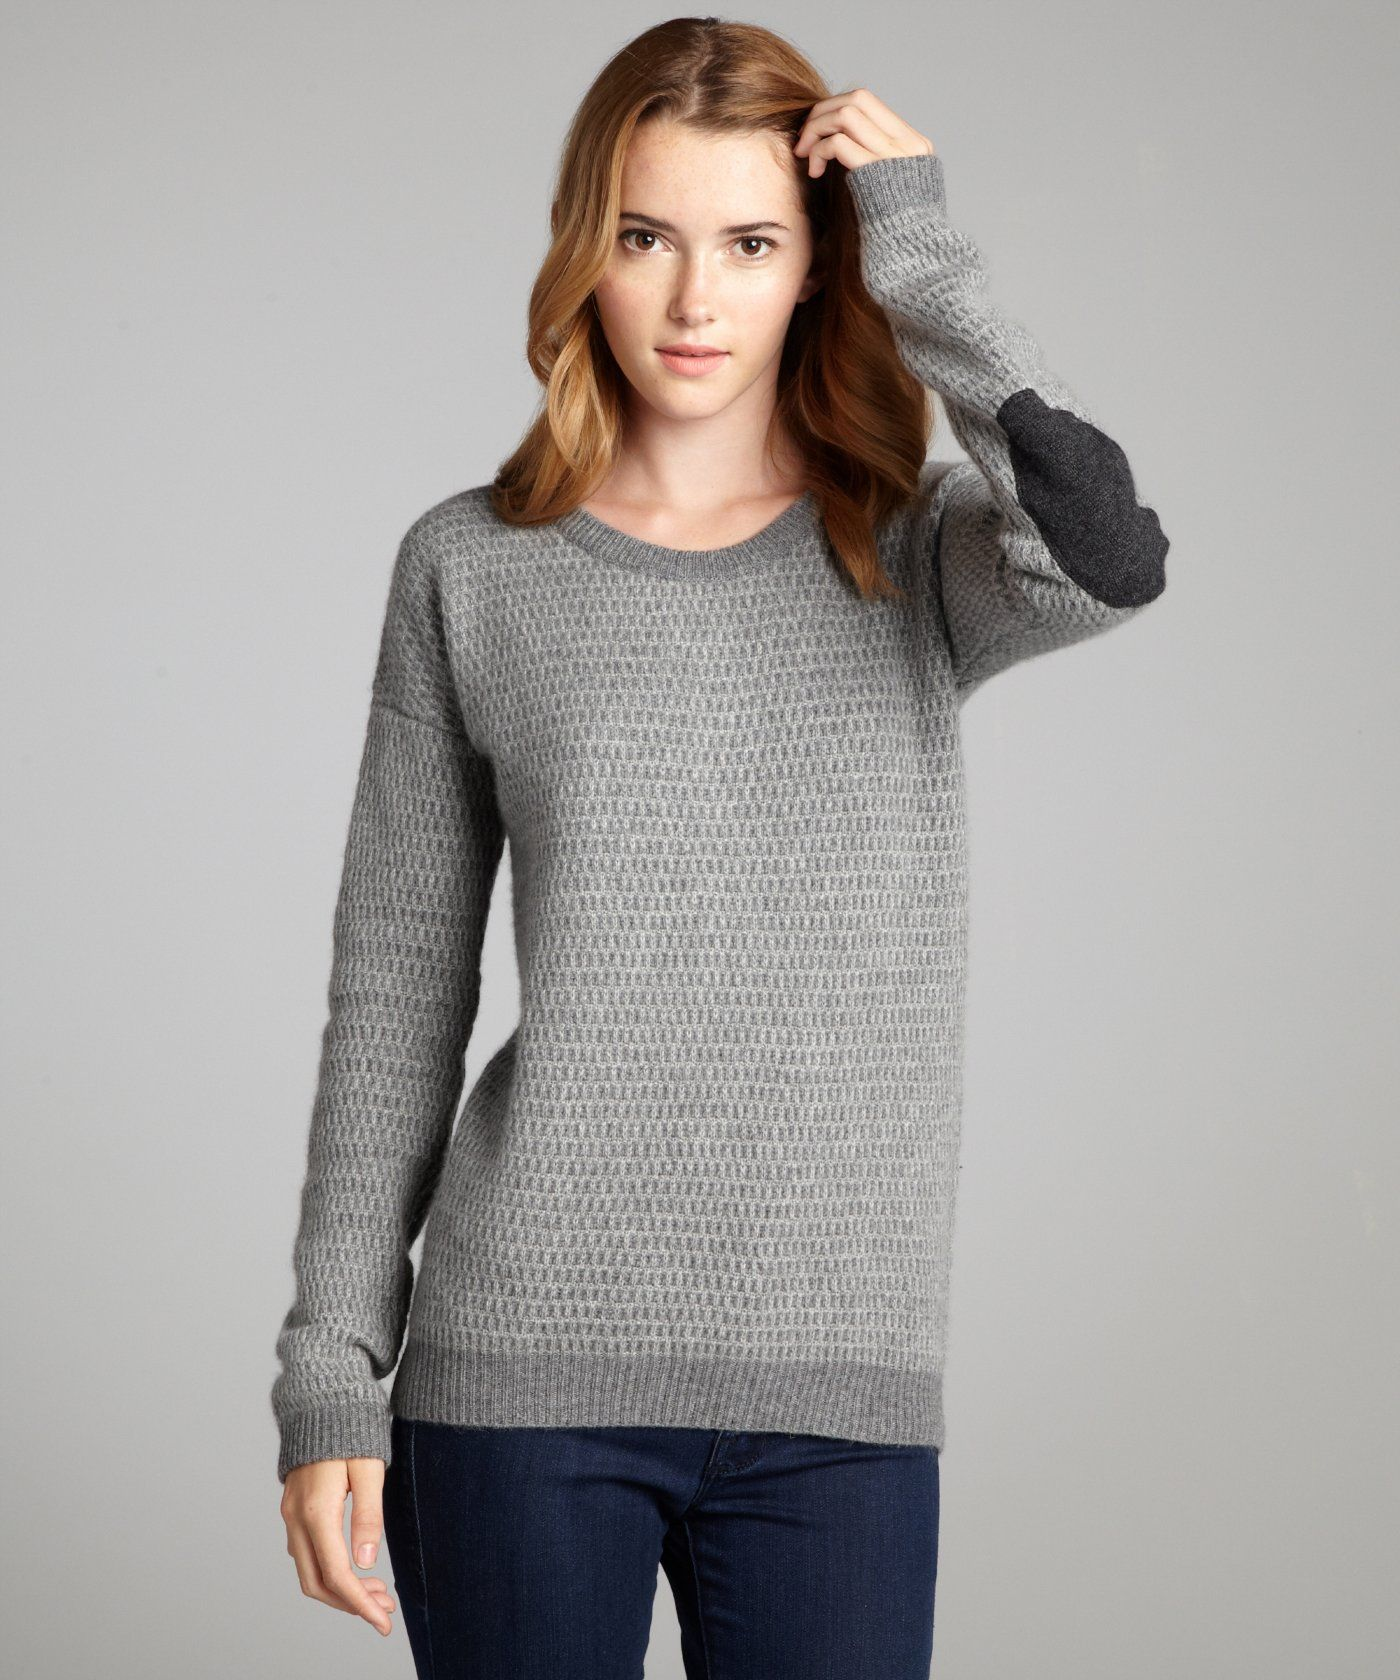 Wyatt heather and charcoal thermal knit elbow patch cashmere ...